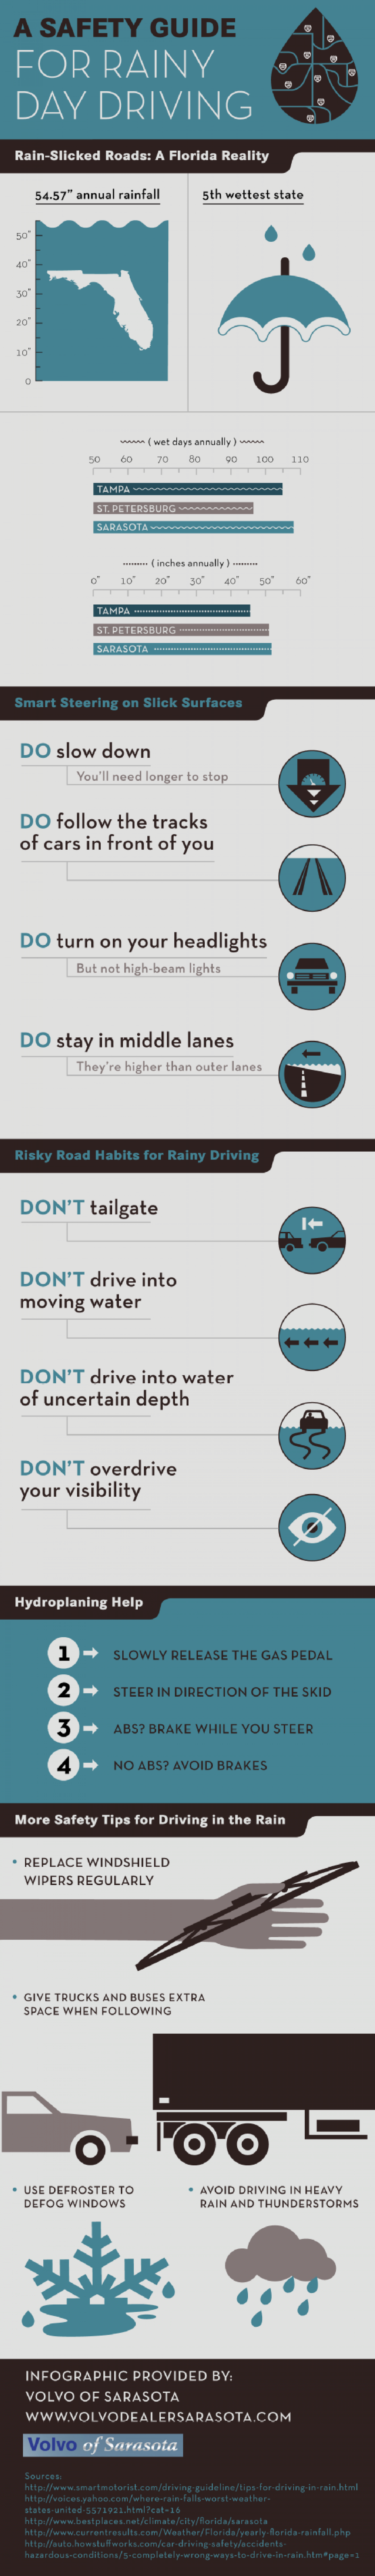 A Safety Guide for Rainy Day Driving  Infographic